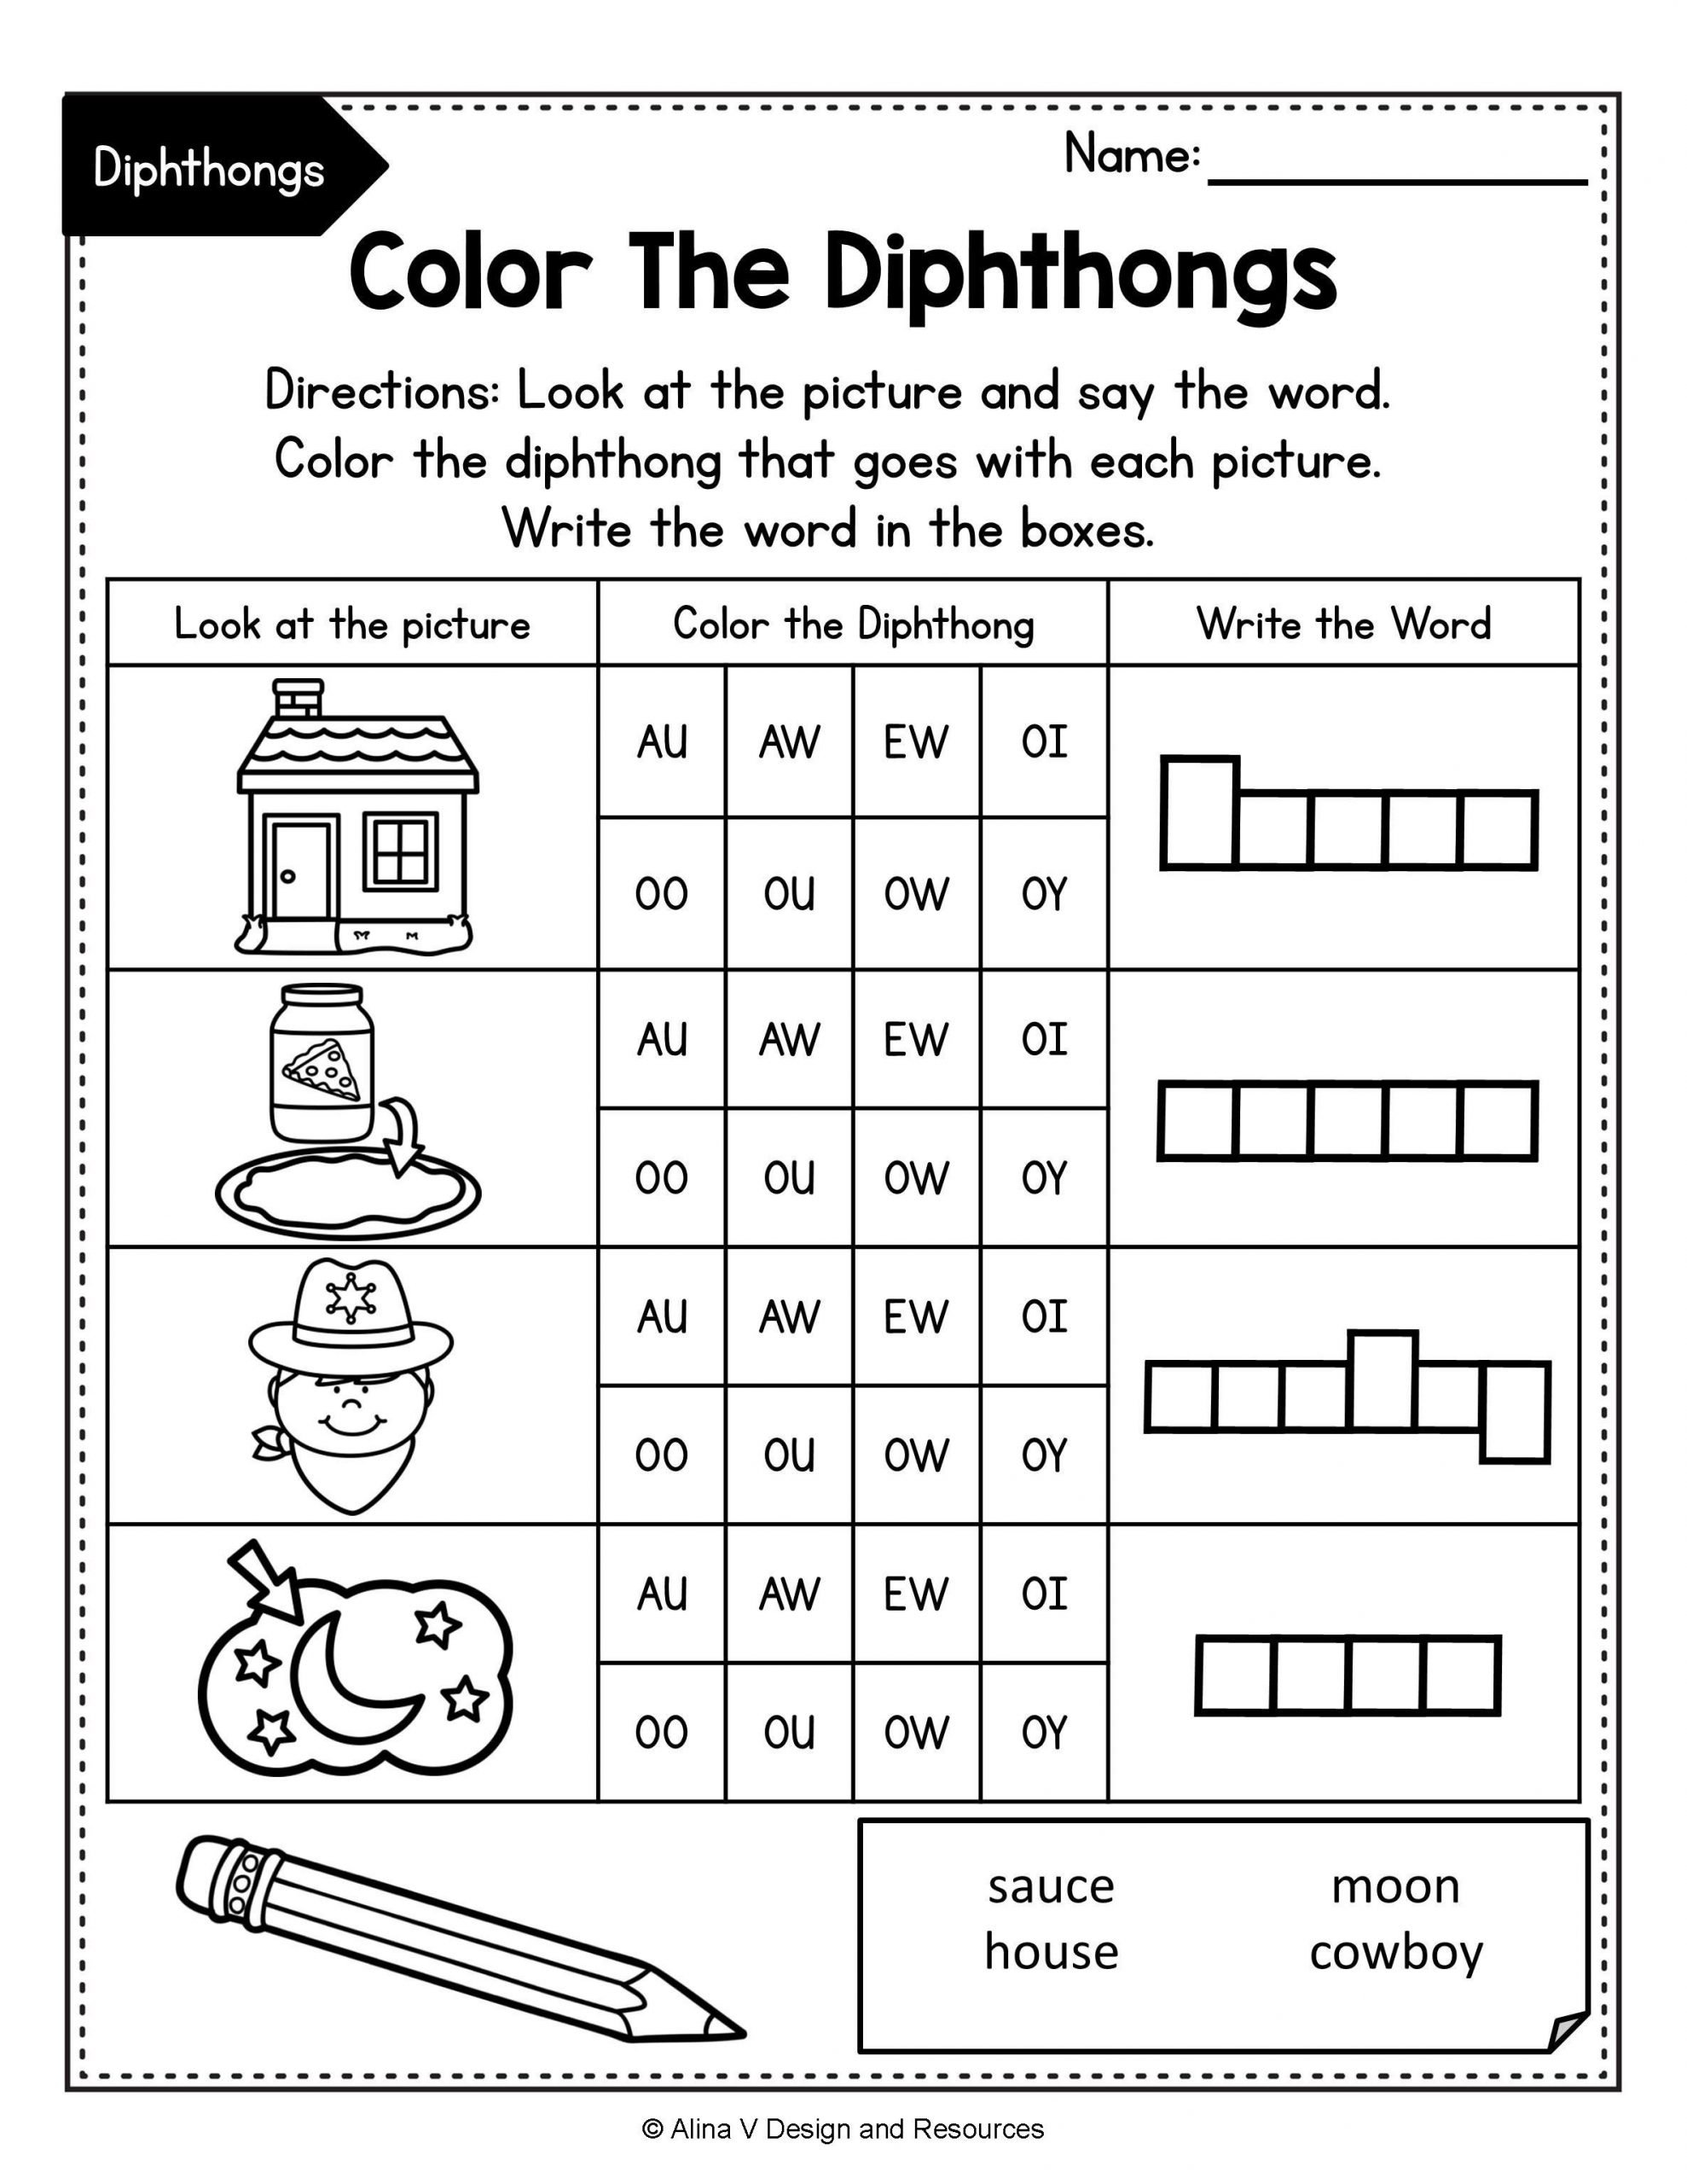 Diphthongs Worksheets Pdf Pin On Alina V Design